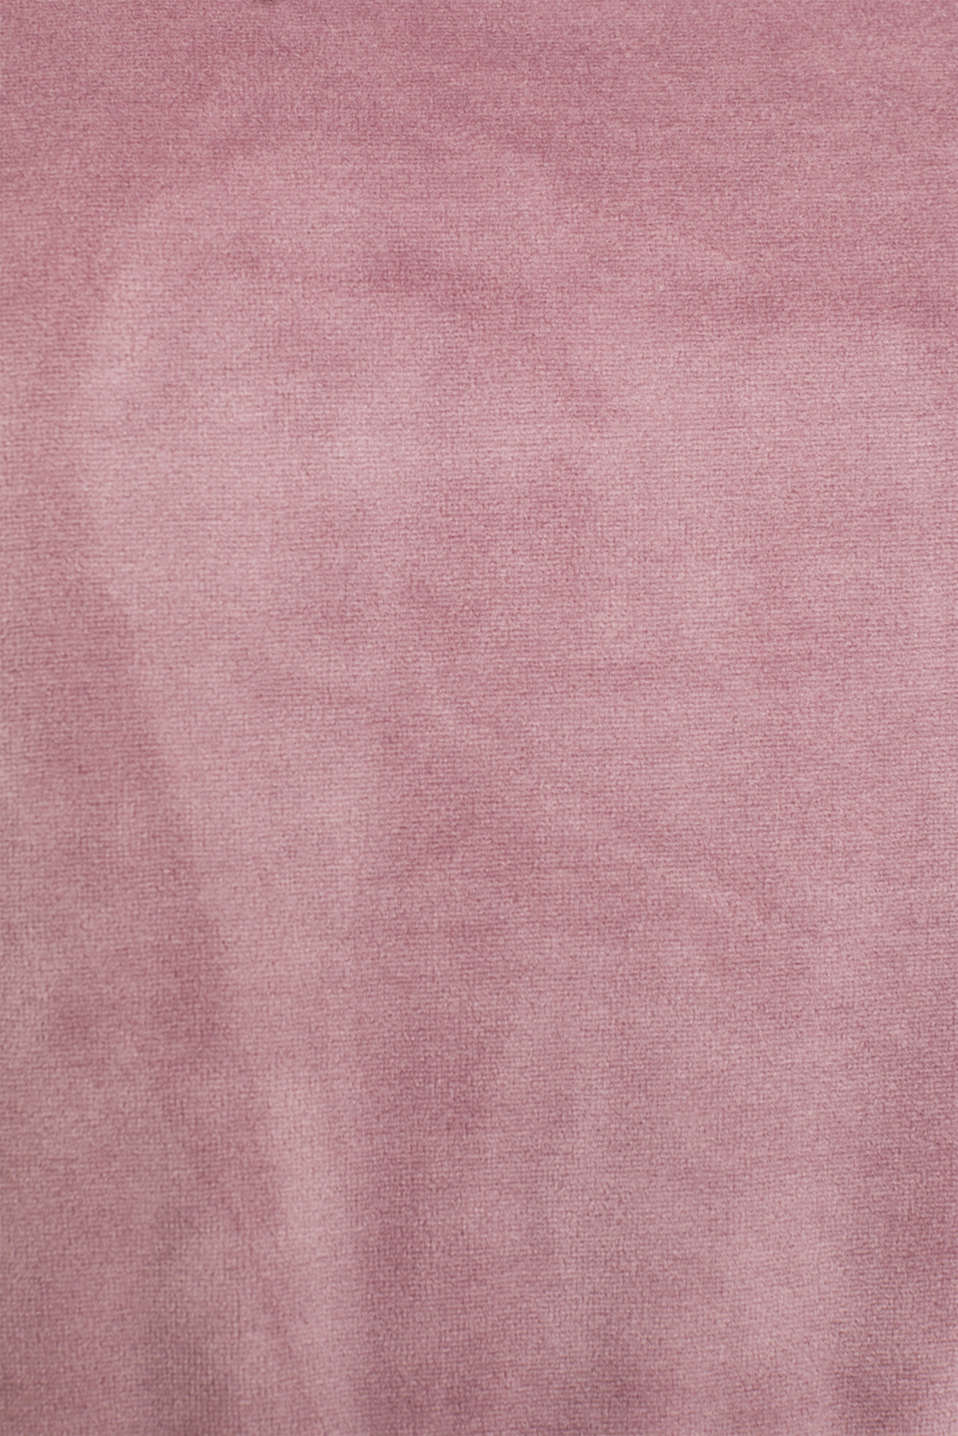 Velour sweatshirt with ribbed cuffs and waistband, MAUVE, detail image number 4